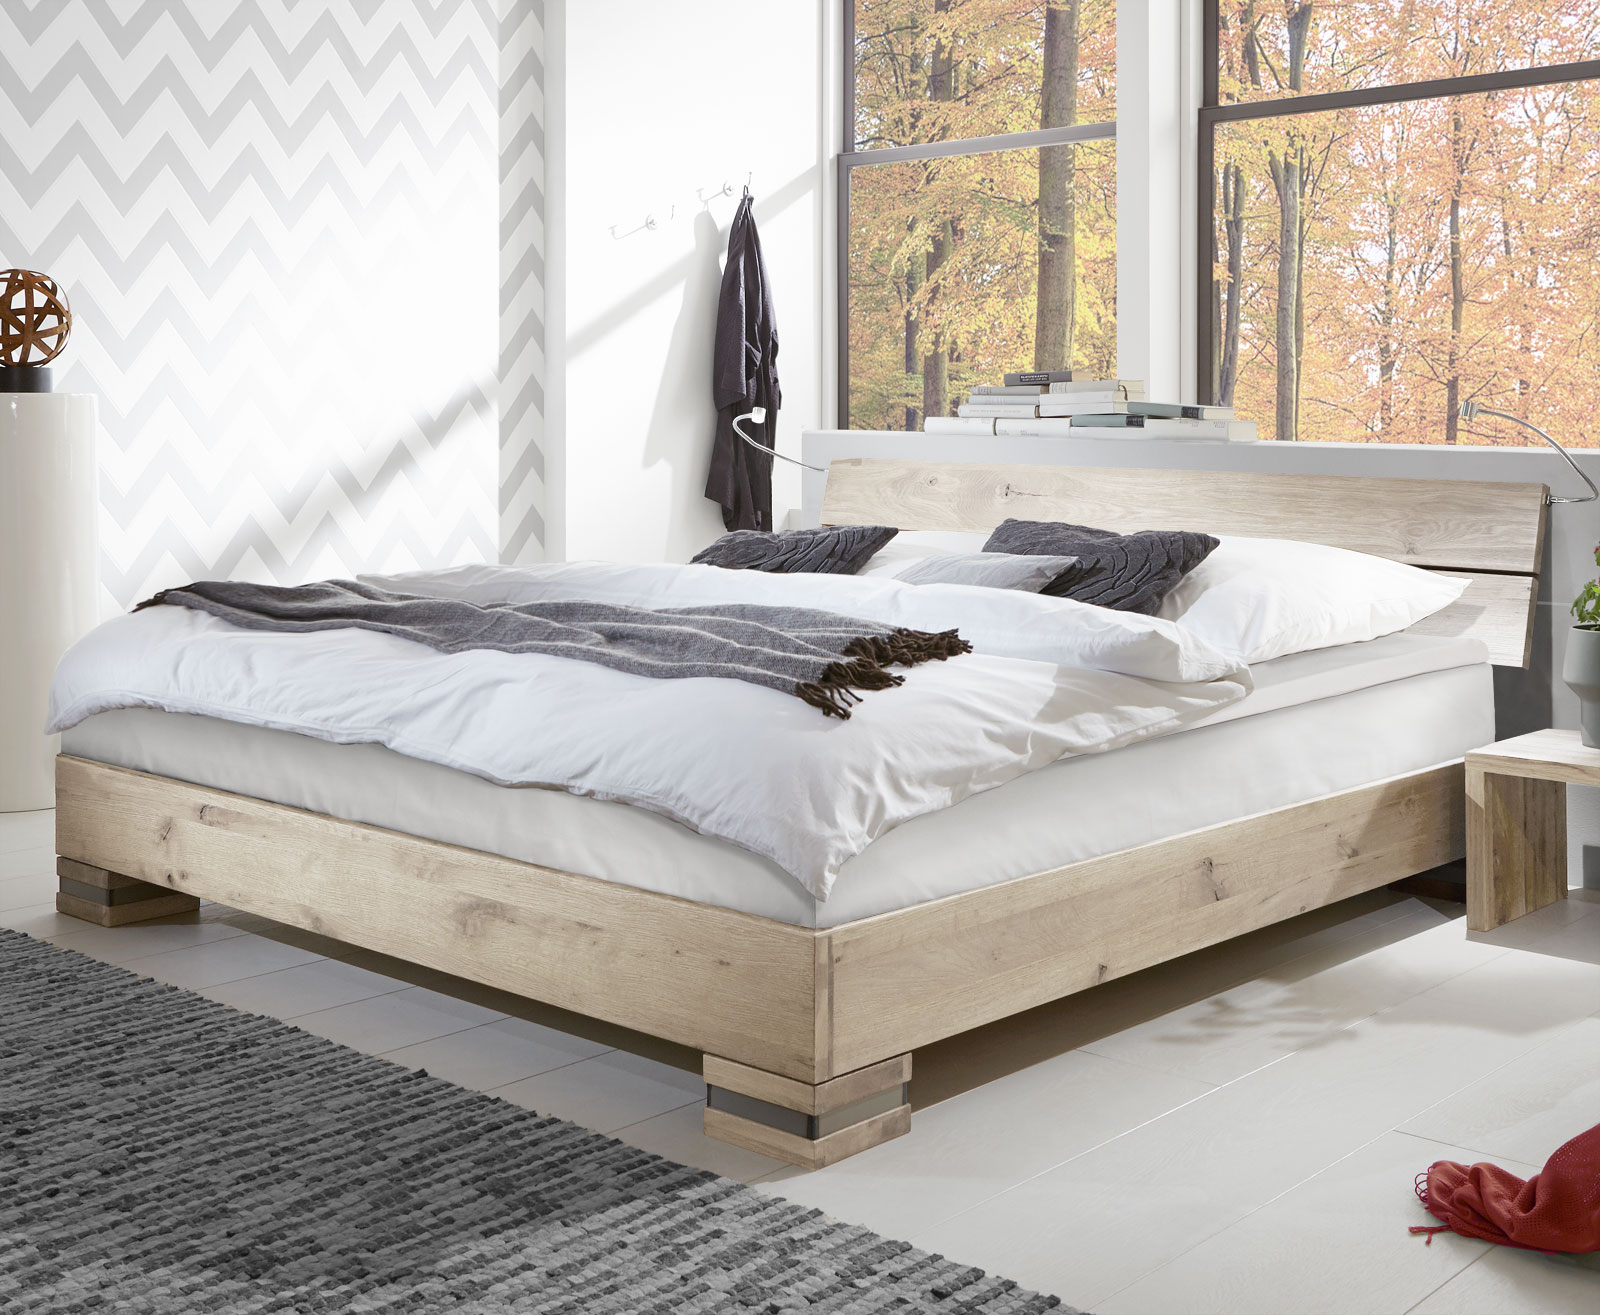 boxspringbett mexiana aus massivholz wildeiche mit. Black Bedroom Furniture Sets. Home Design Ideas